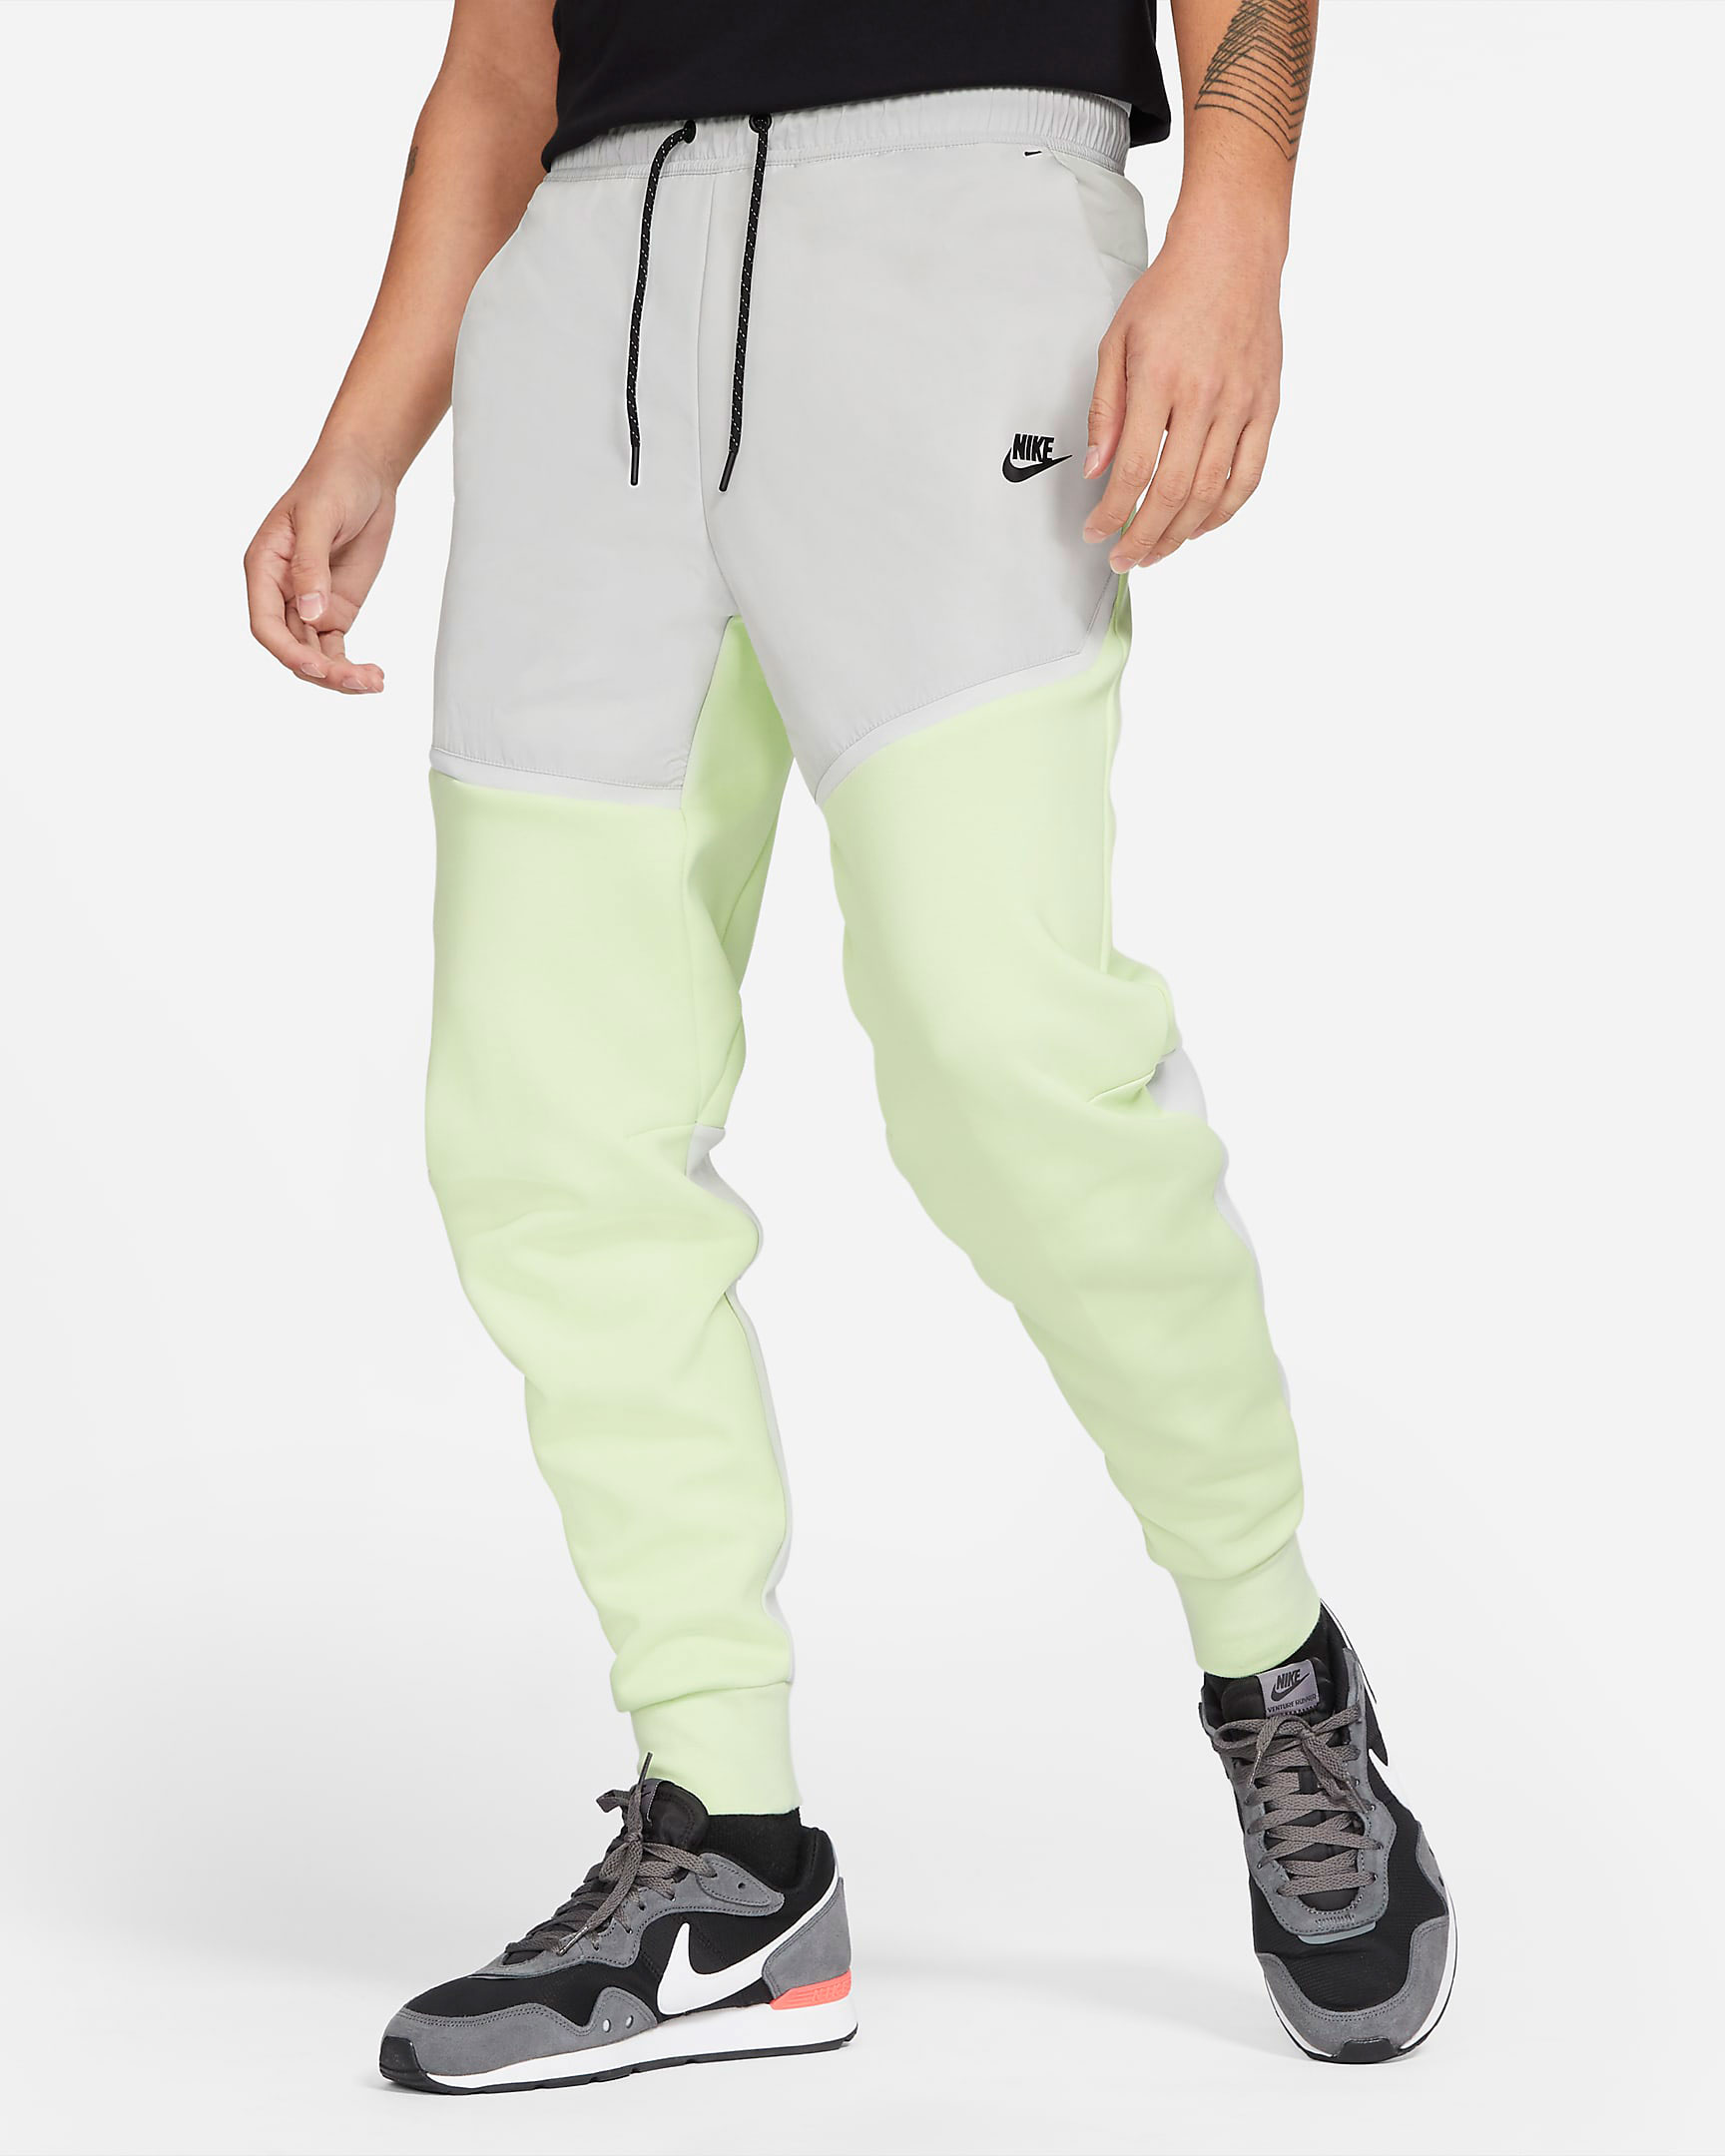 nike-sportswear-light-liquid-lime-grey-tech-fleece-joggers-1